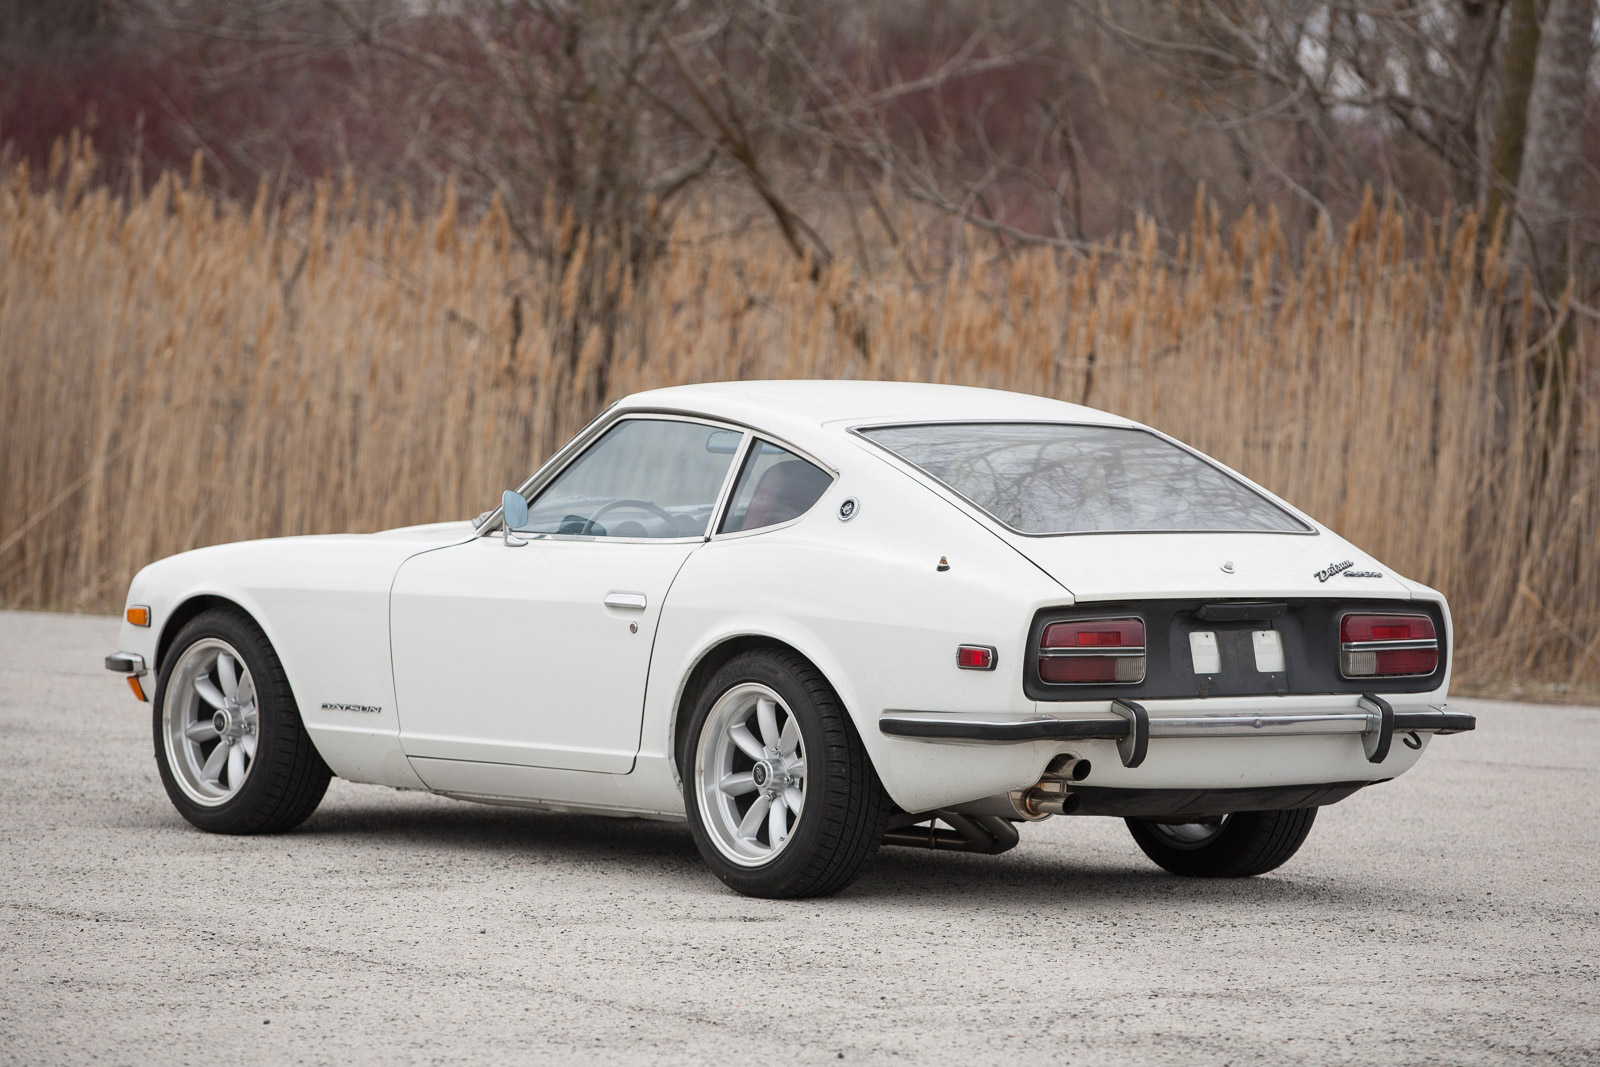 Nissan datsun photo - 5